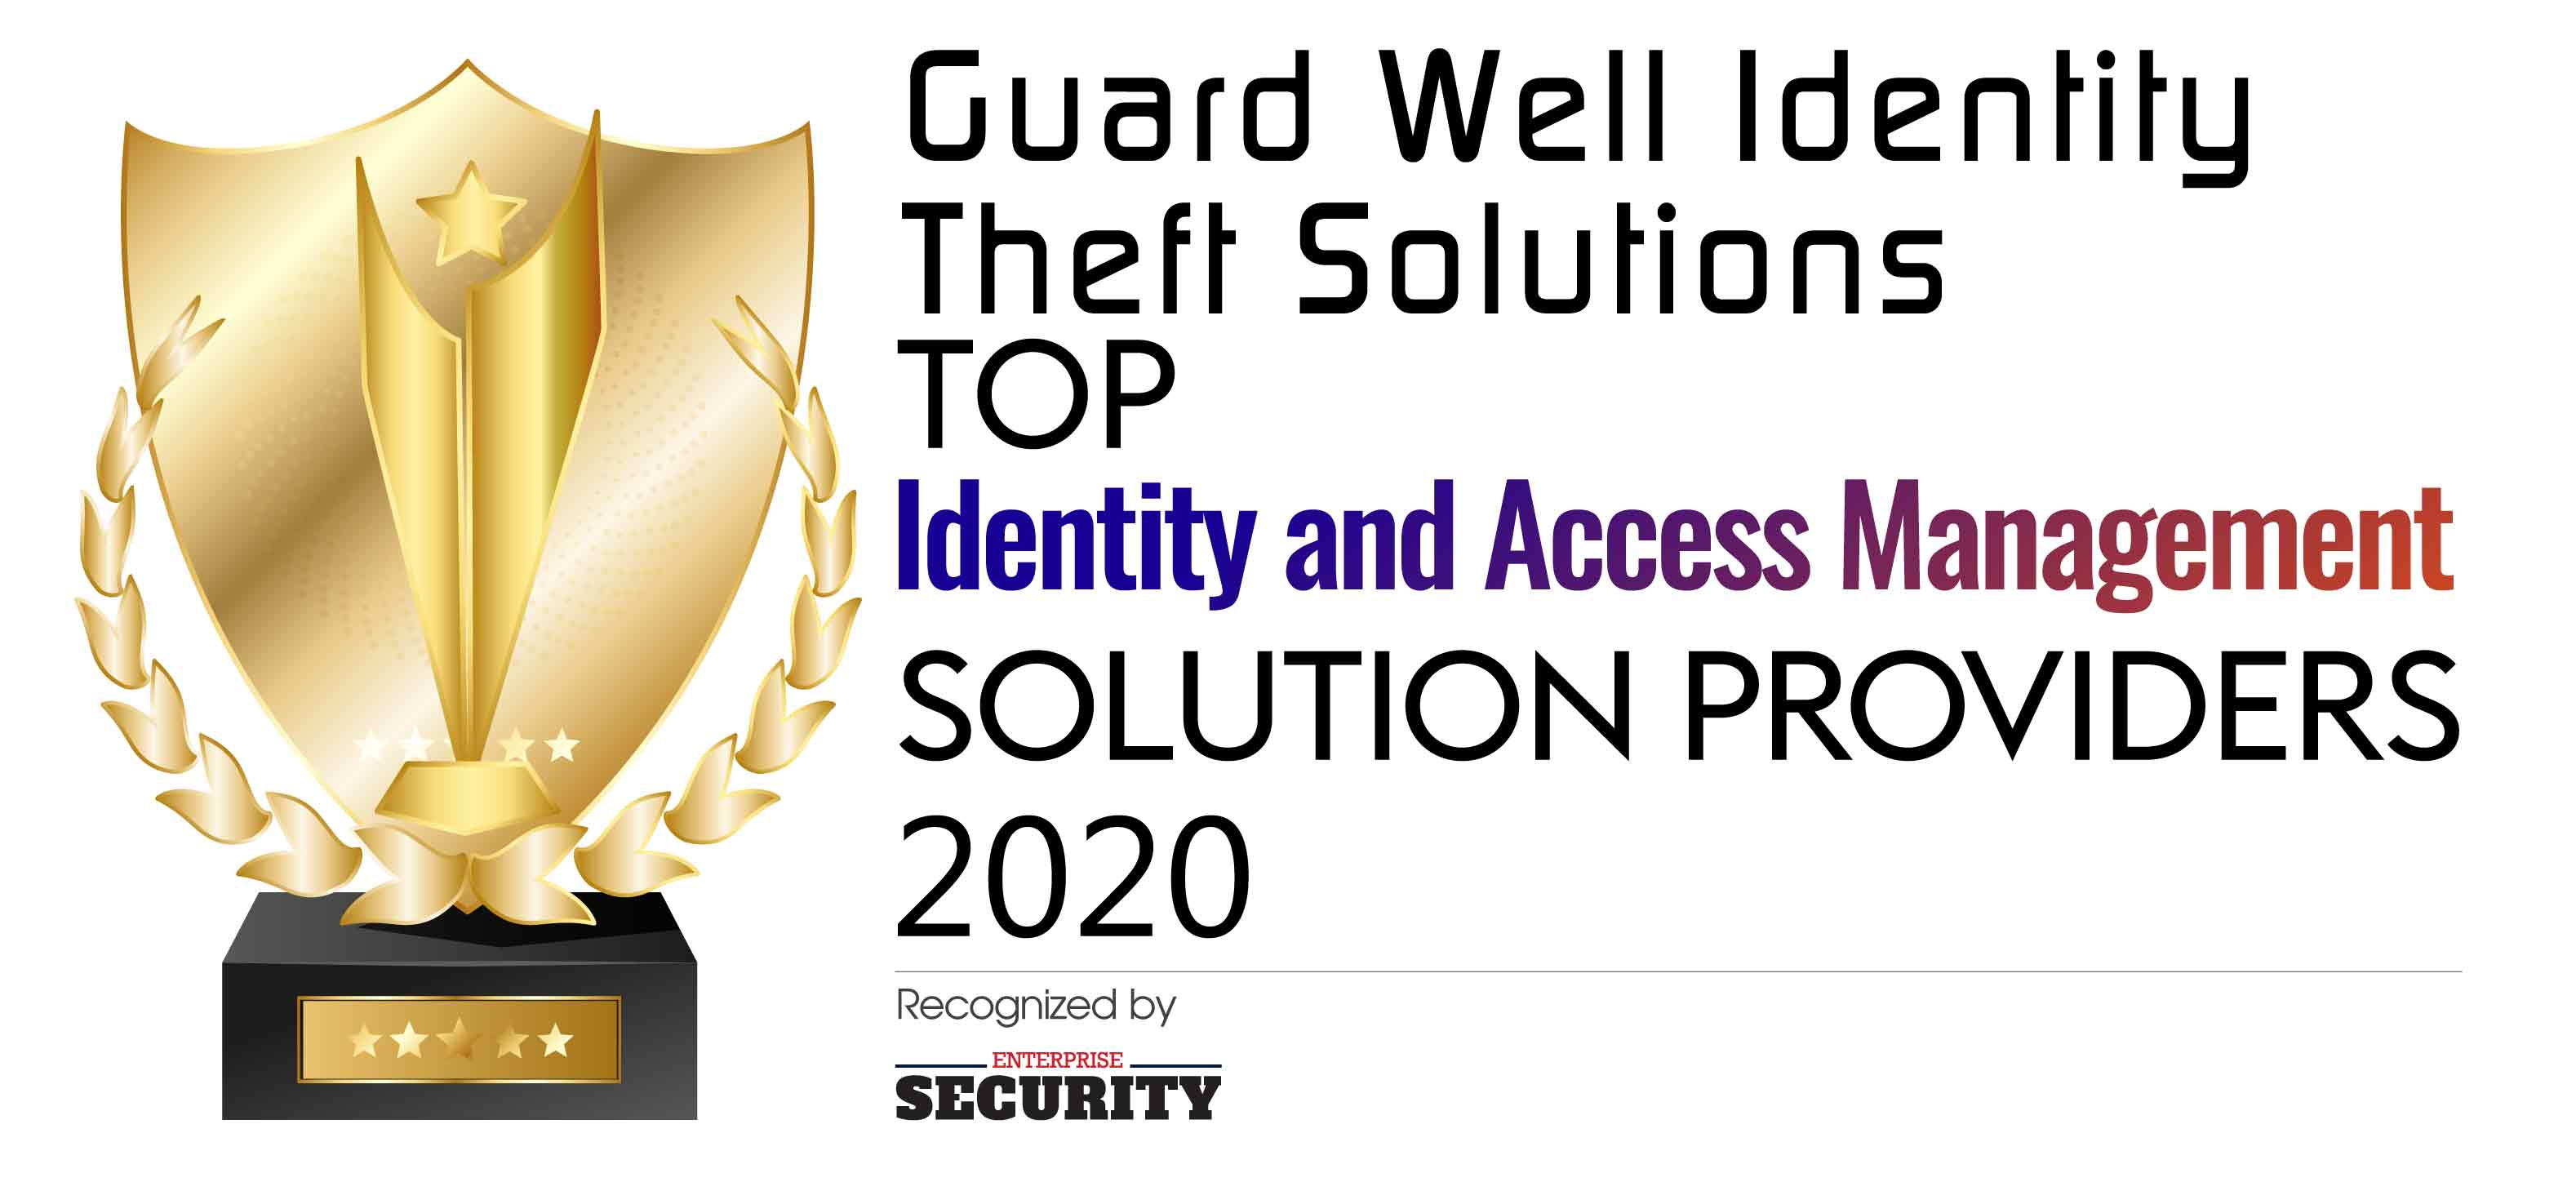 Top 10 Identity and Access Management Solution Companies - 2020